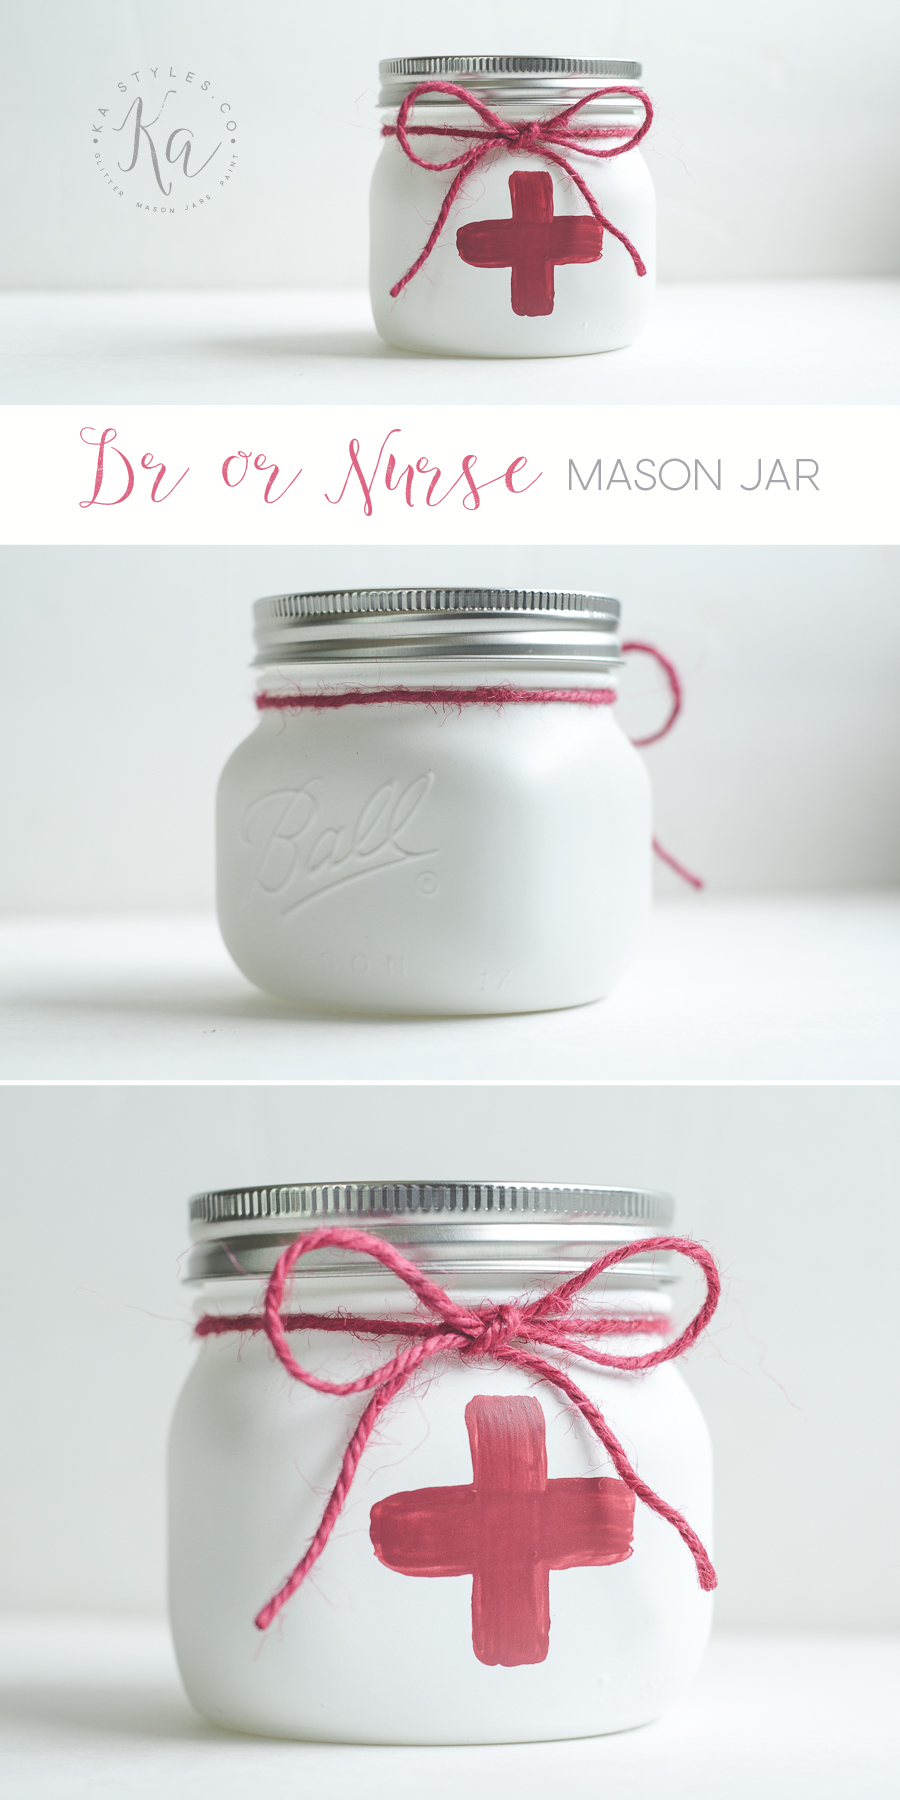 Medical Dr or Nurse mason jar. Using Krylon Chalky Finish spray paint. Perfect for pens or other office goodies.